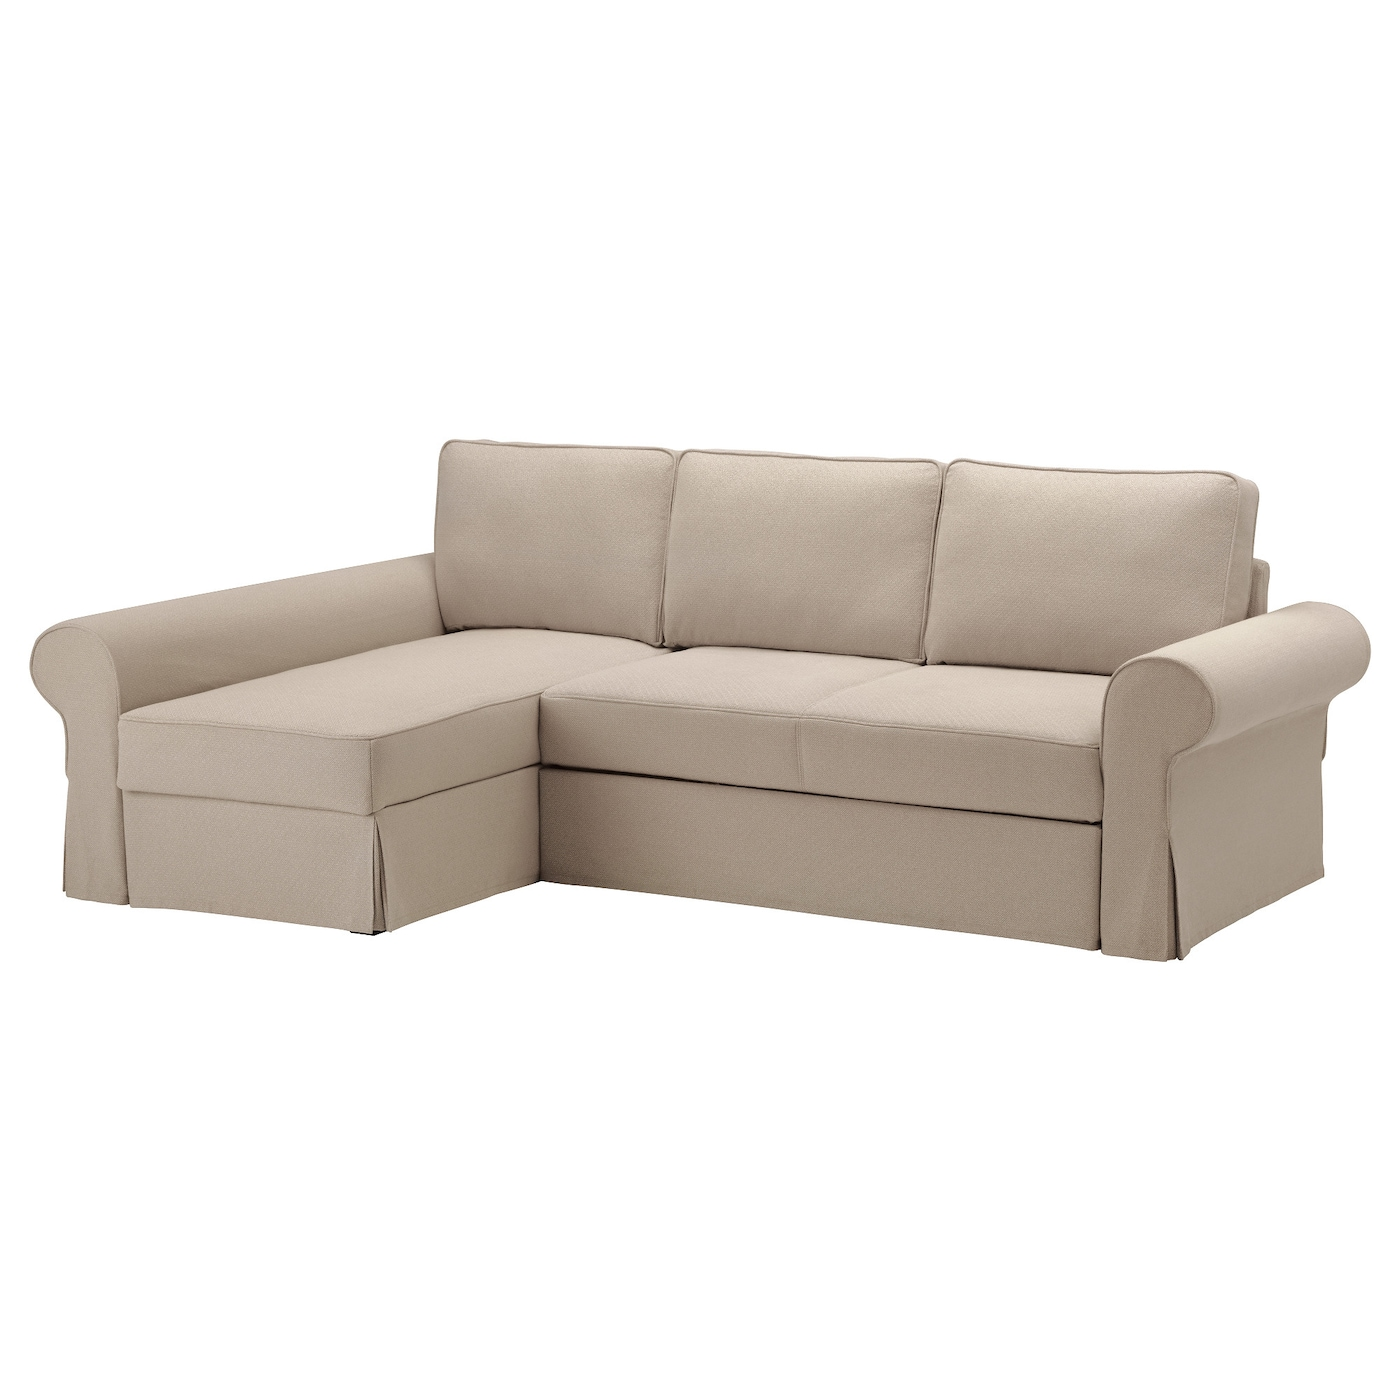 Backabro sofa bed with chaise longue hylte beige ikea for Beige sectional with chaise